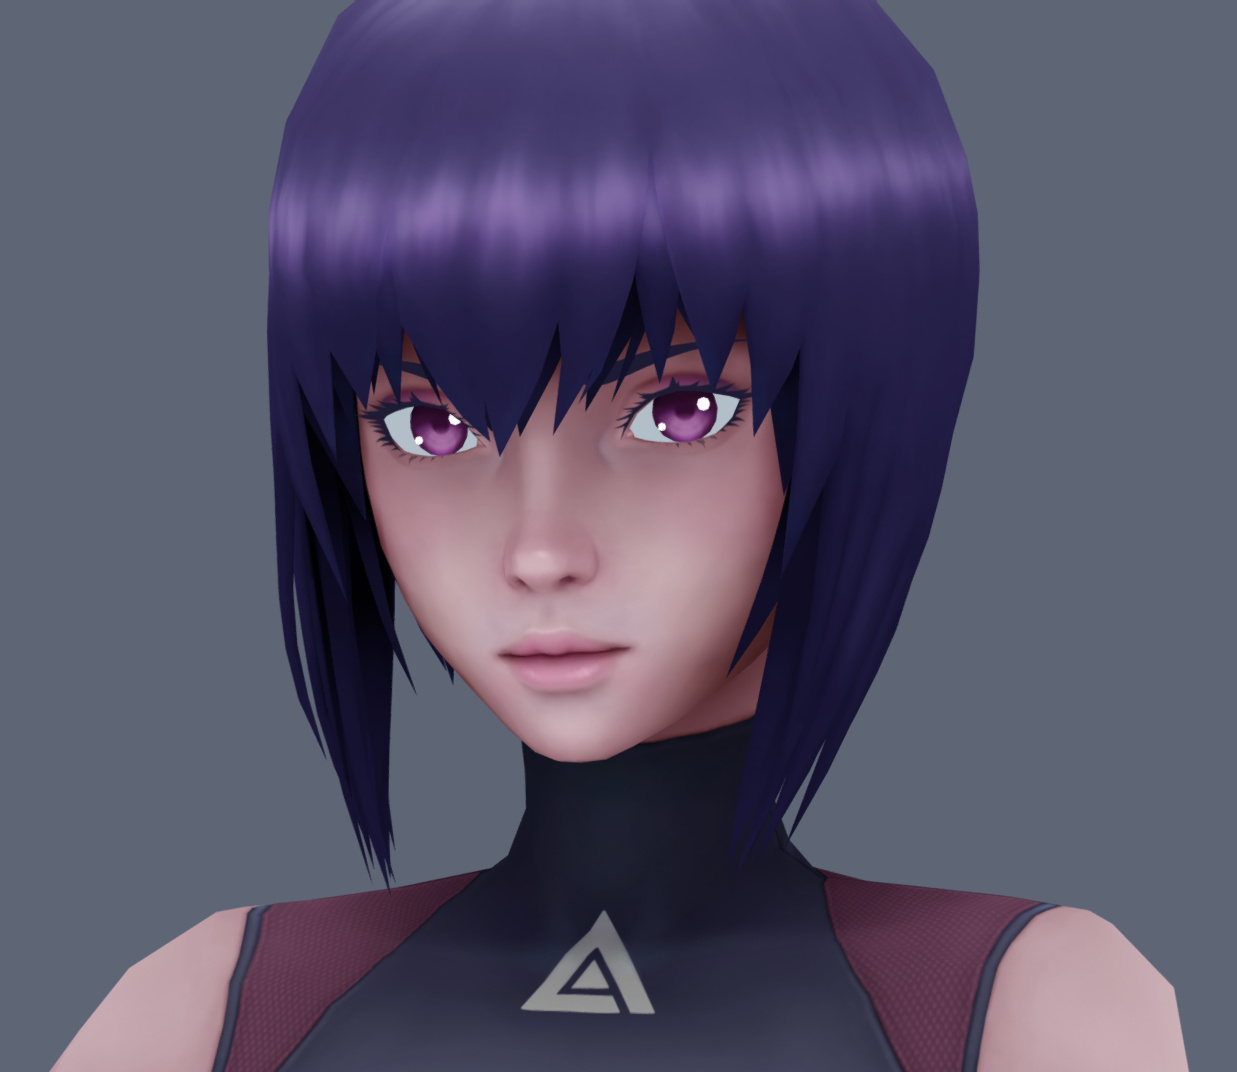 Motoko Kusanagi Fanart Ghost In The Shell Sac 2045 Finished Projects Blender Artists Community